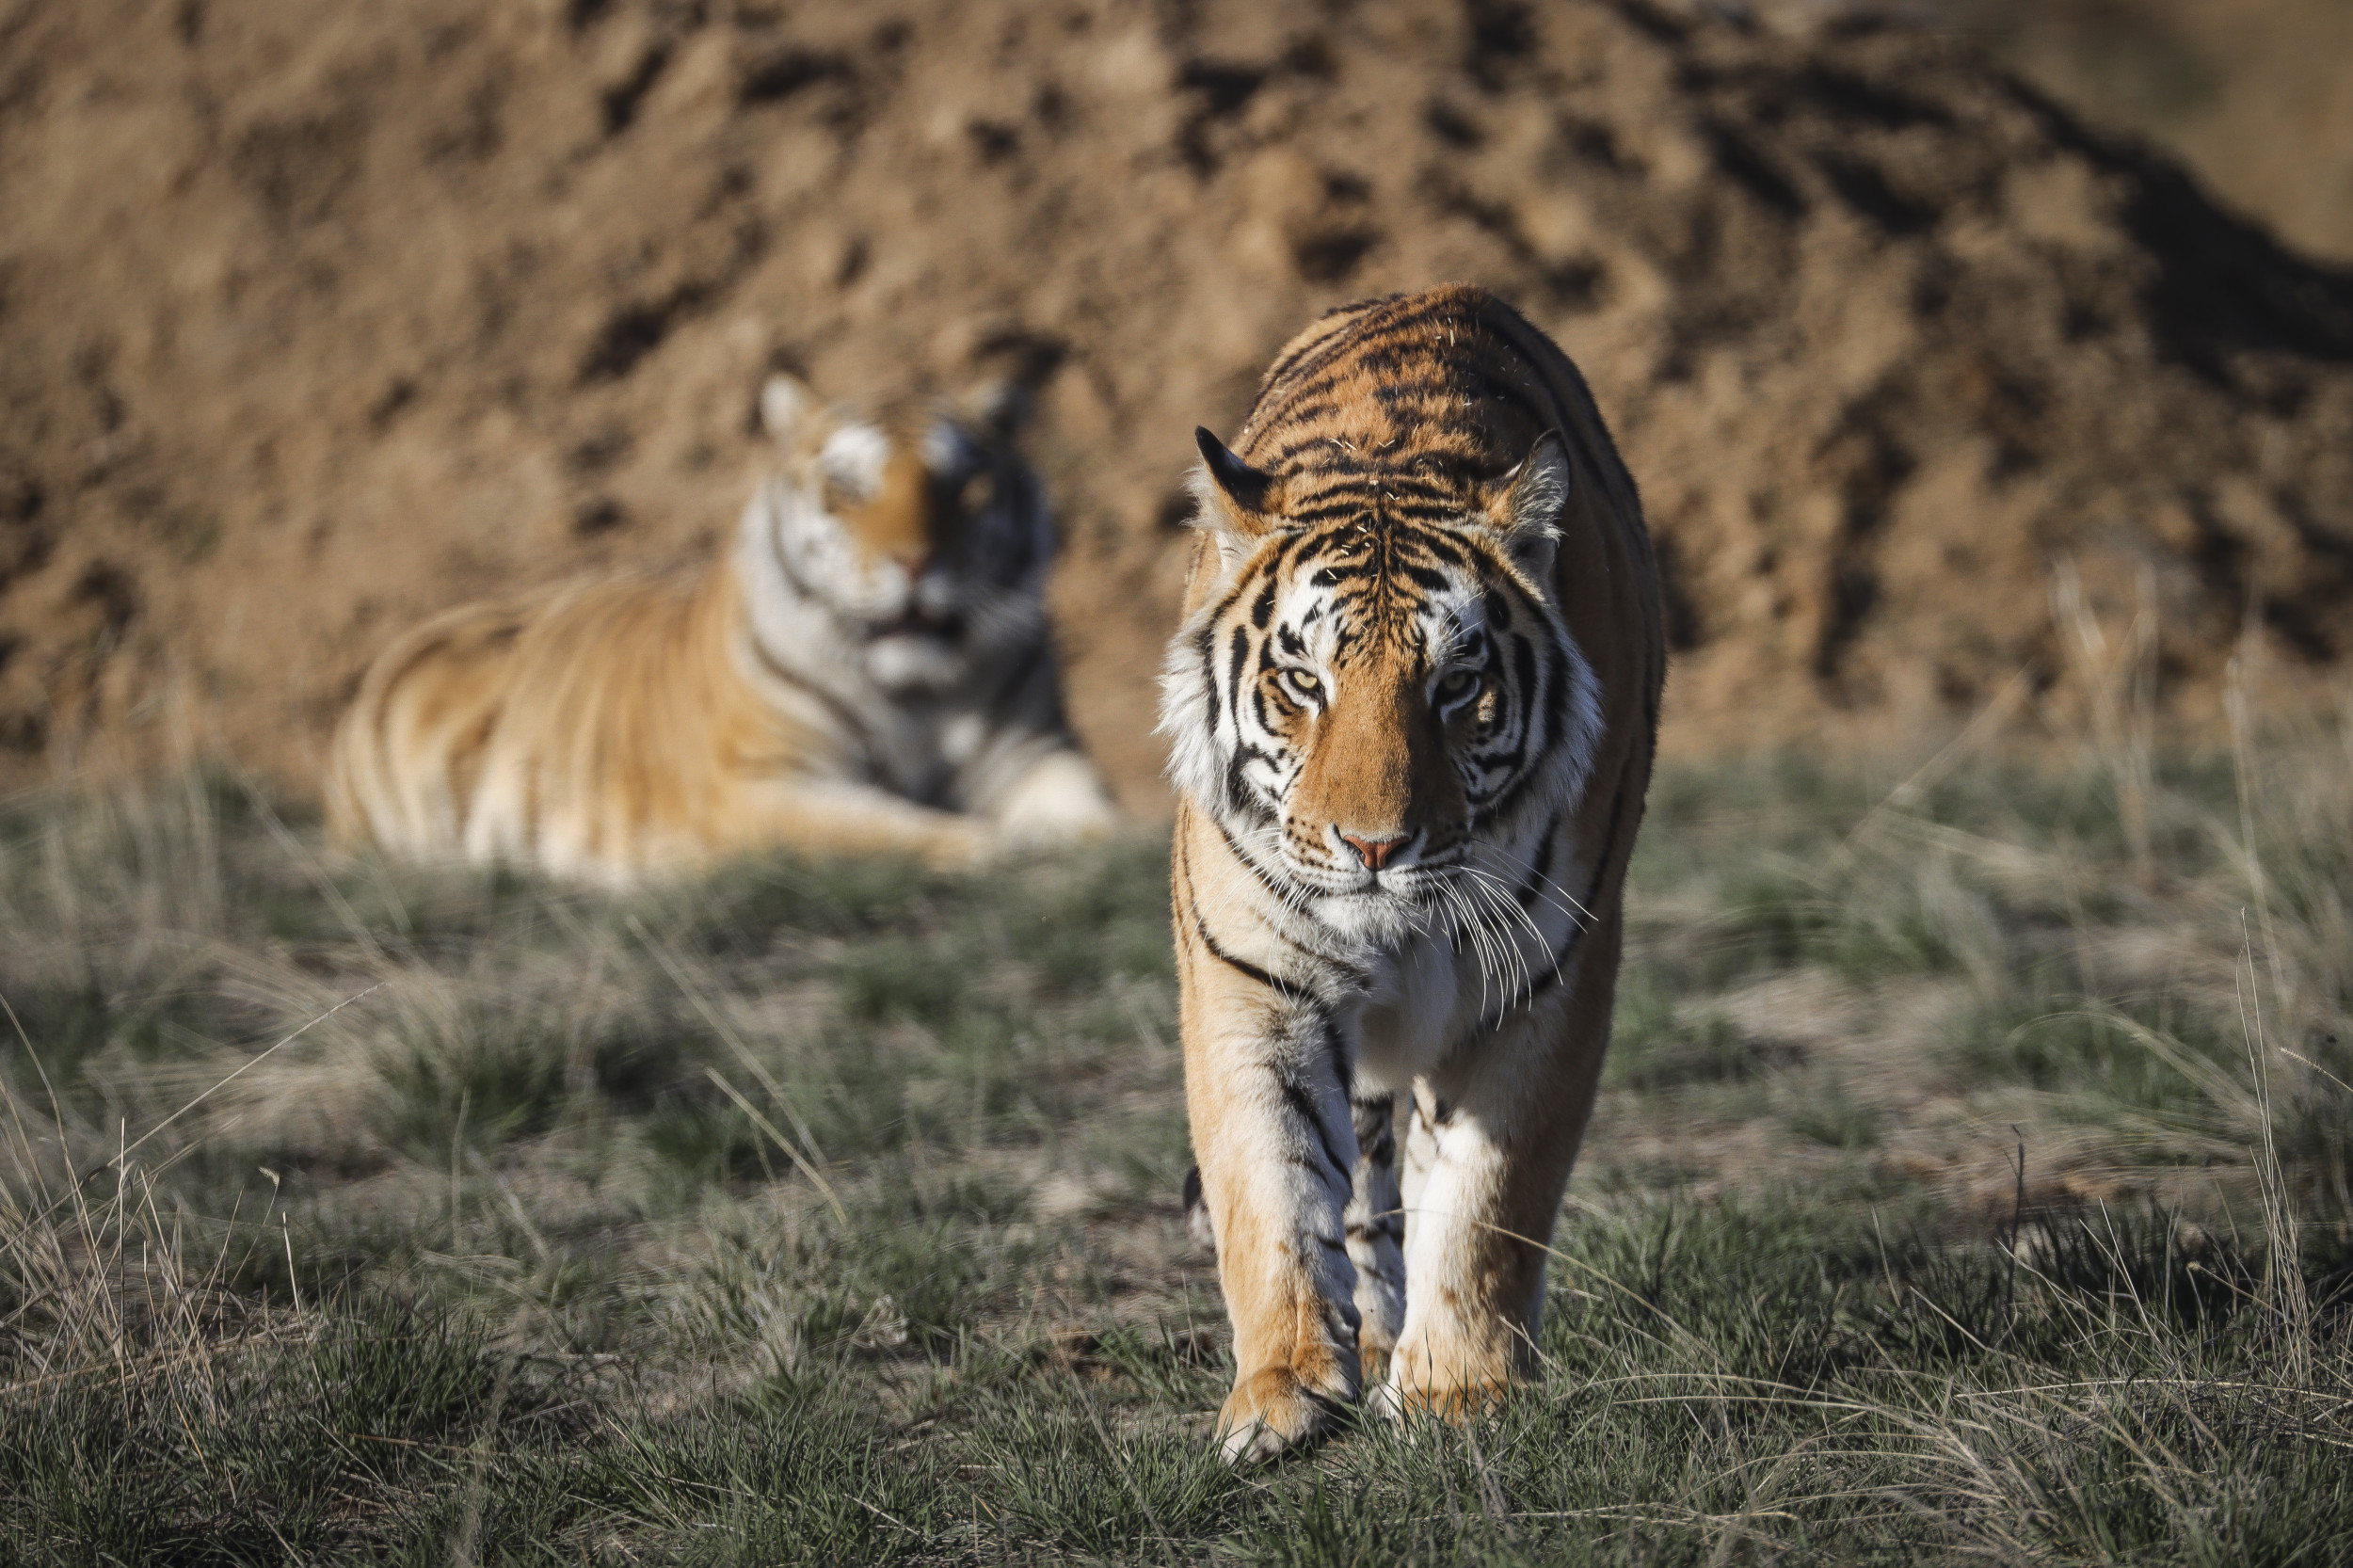 'Tiger King' zoo raided by investigators in search of human remains